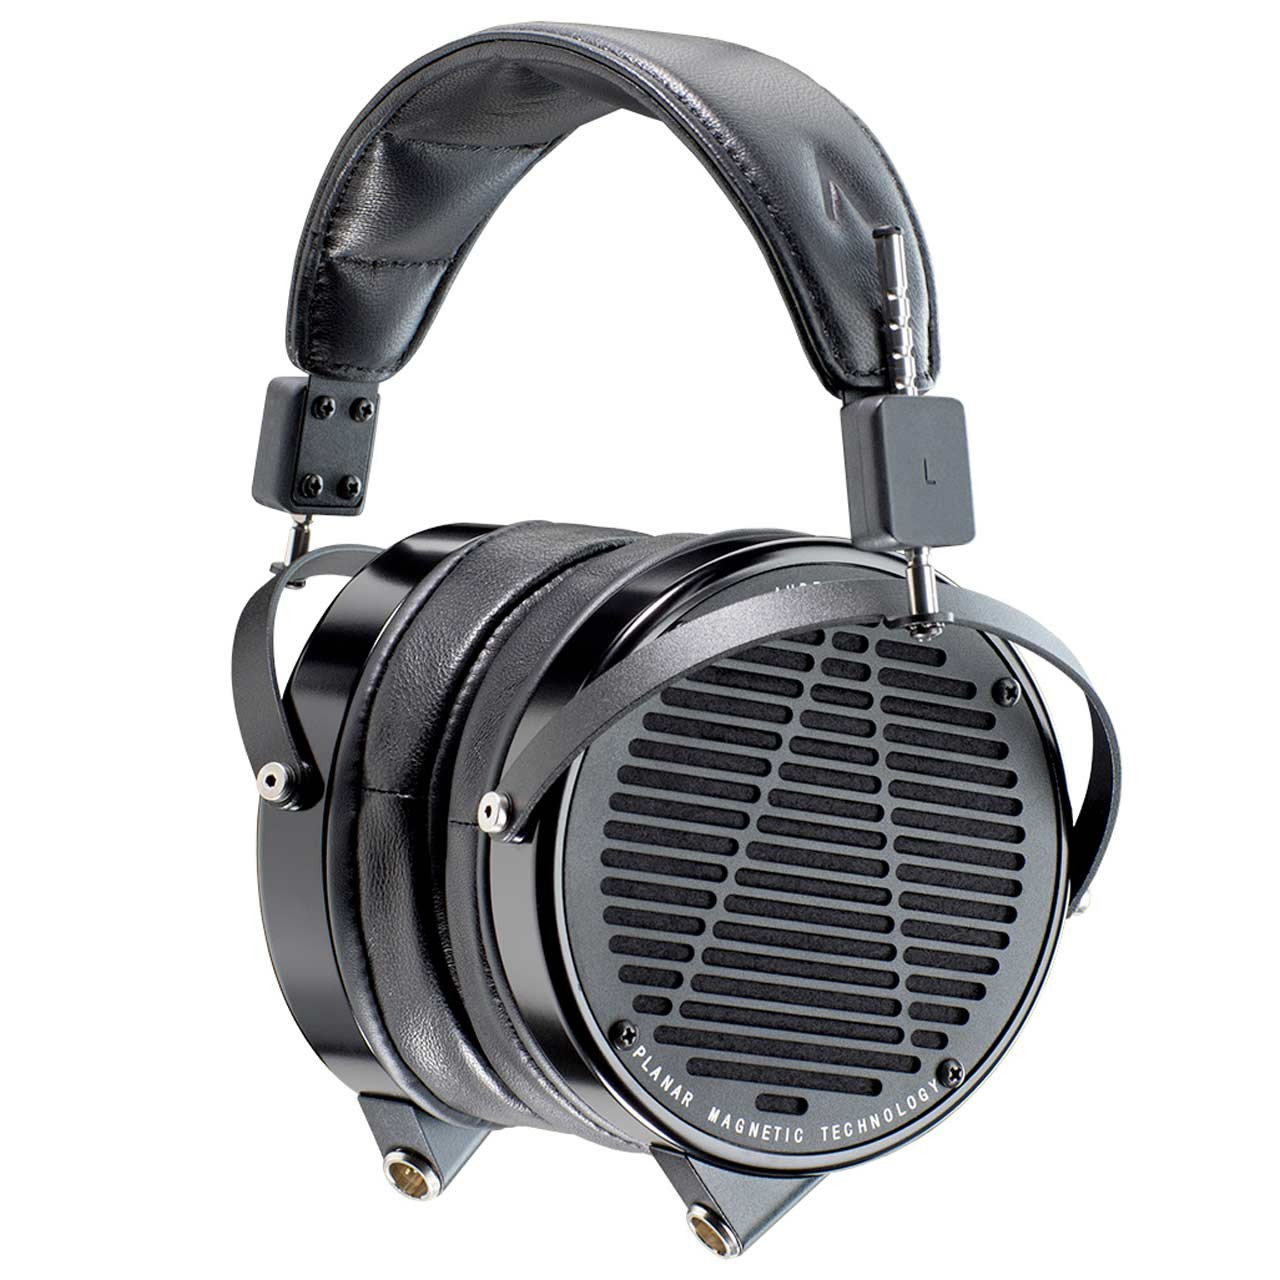 Open Headphones - Audeze LCD-X Open-Back Headphones